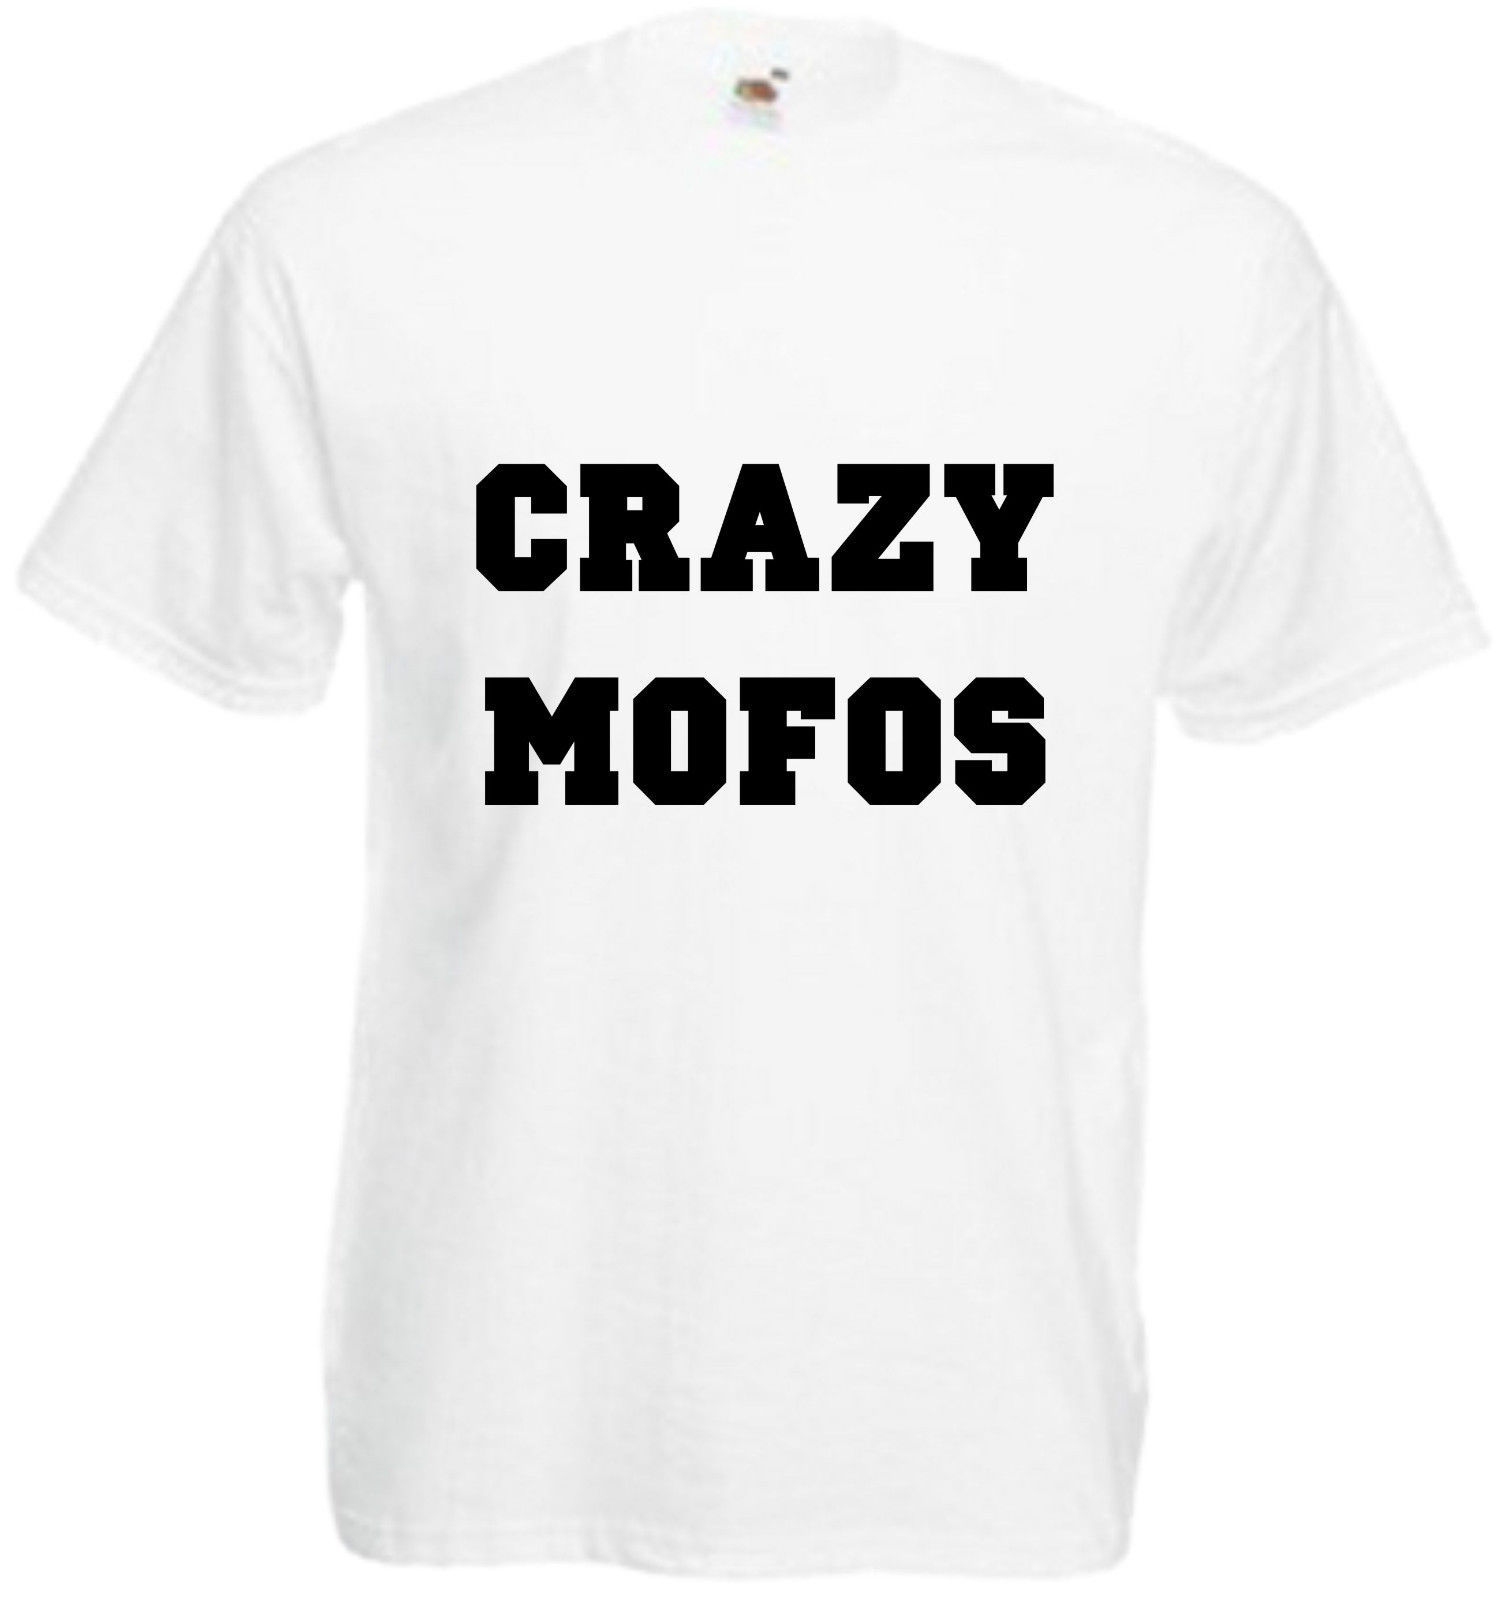 Crazy mofo shirt